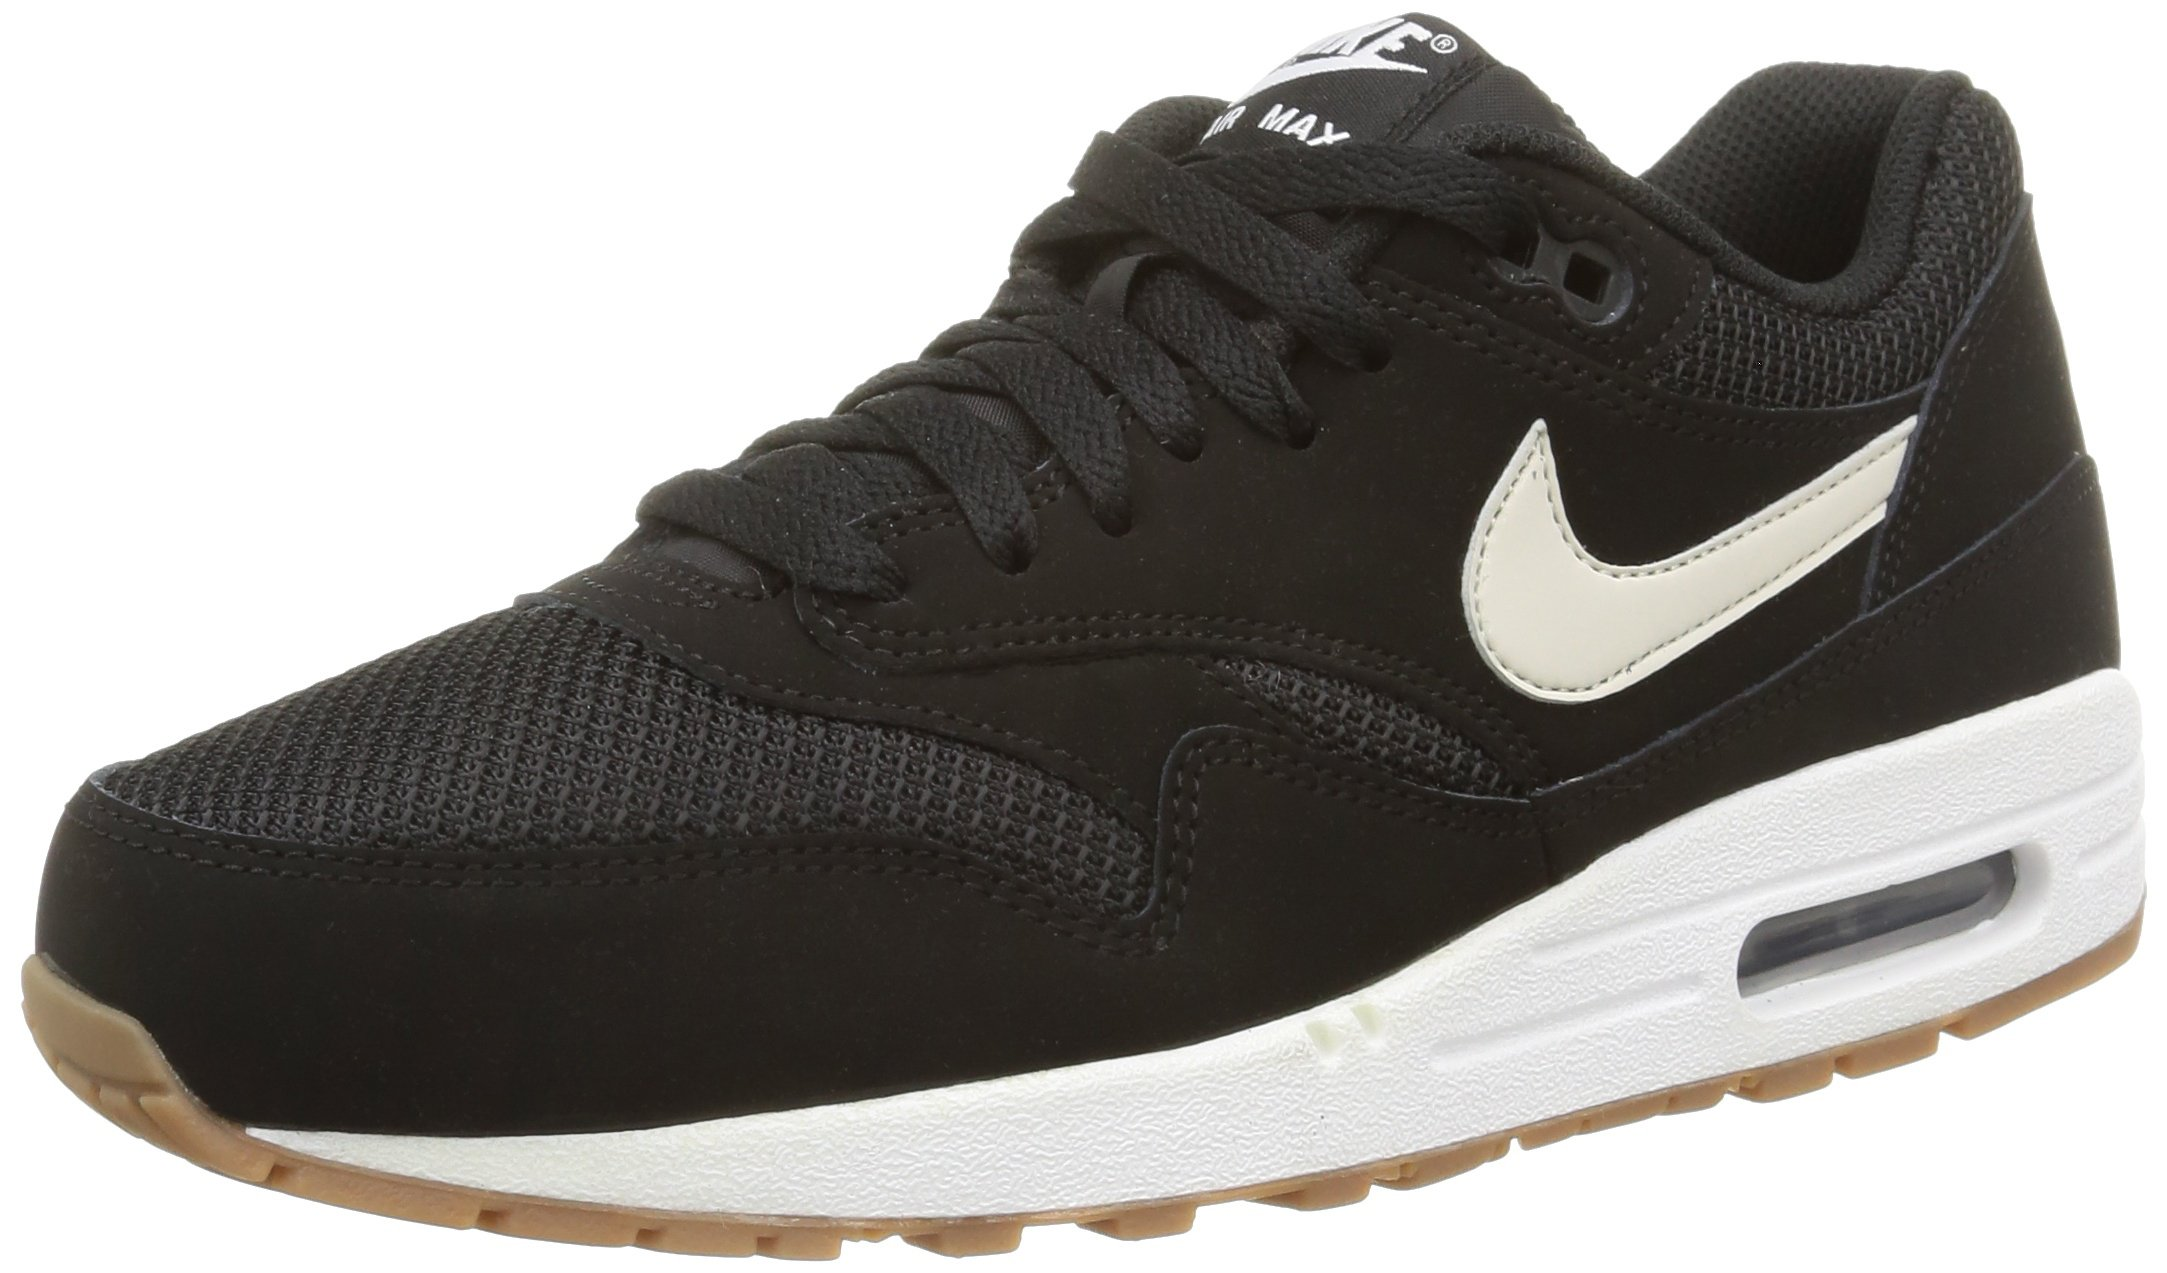 the latest c55c0 7978b Galleon - Nike Men s Air Max 1 Essential Black White 537383-026 (Size  8)